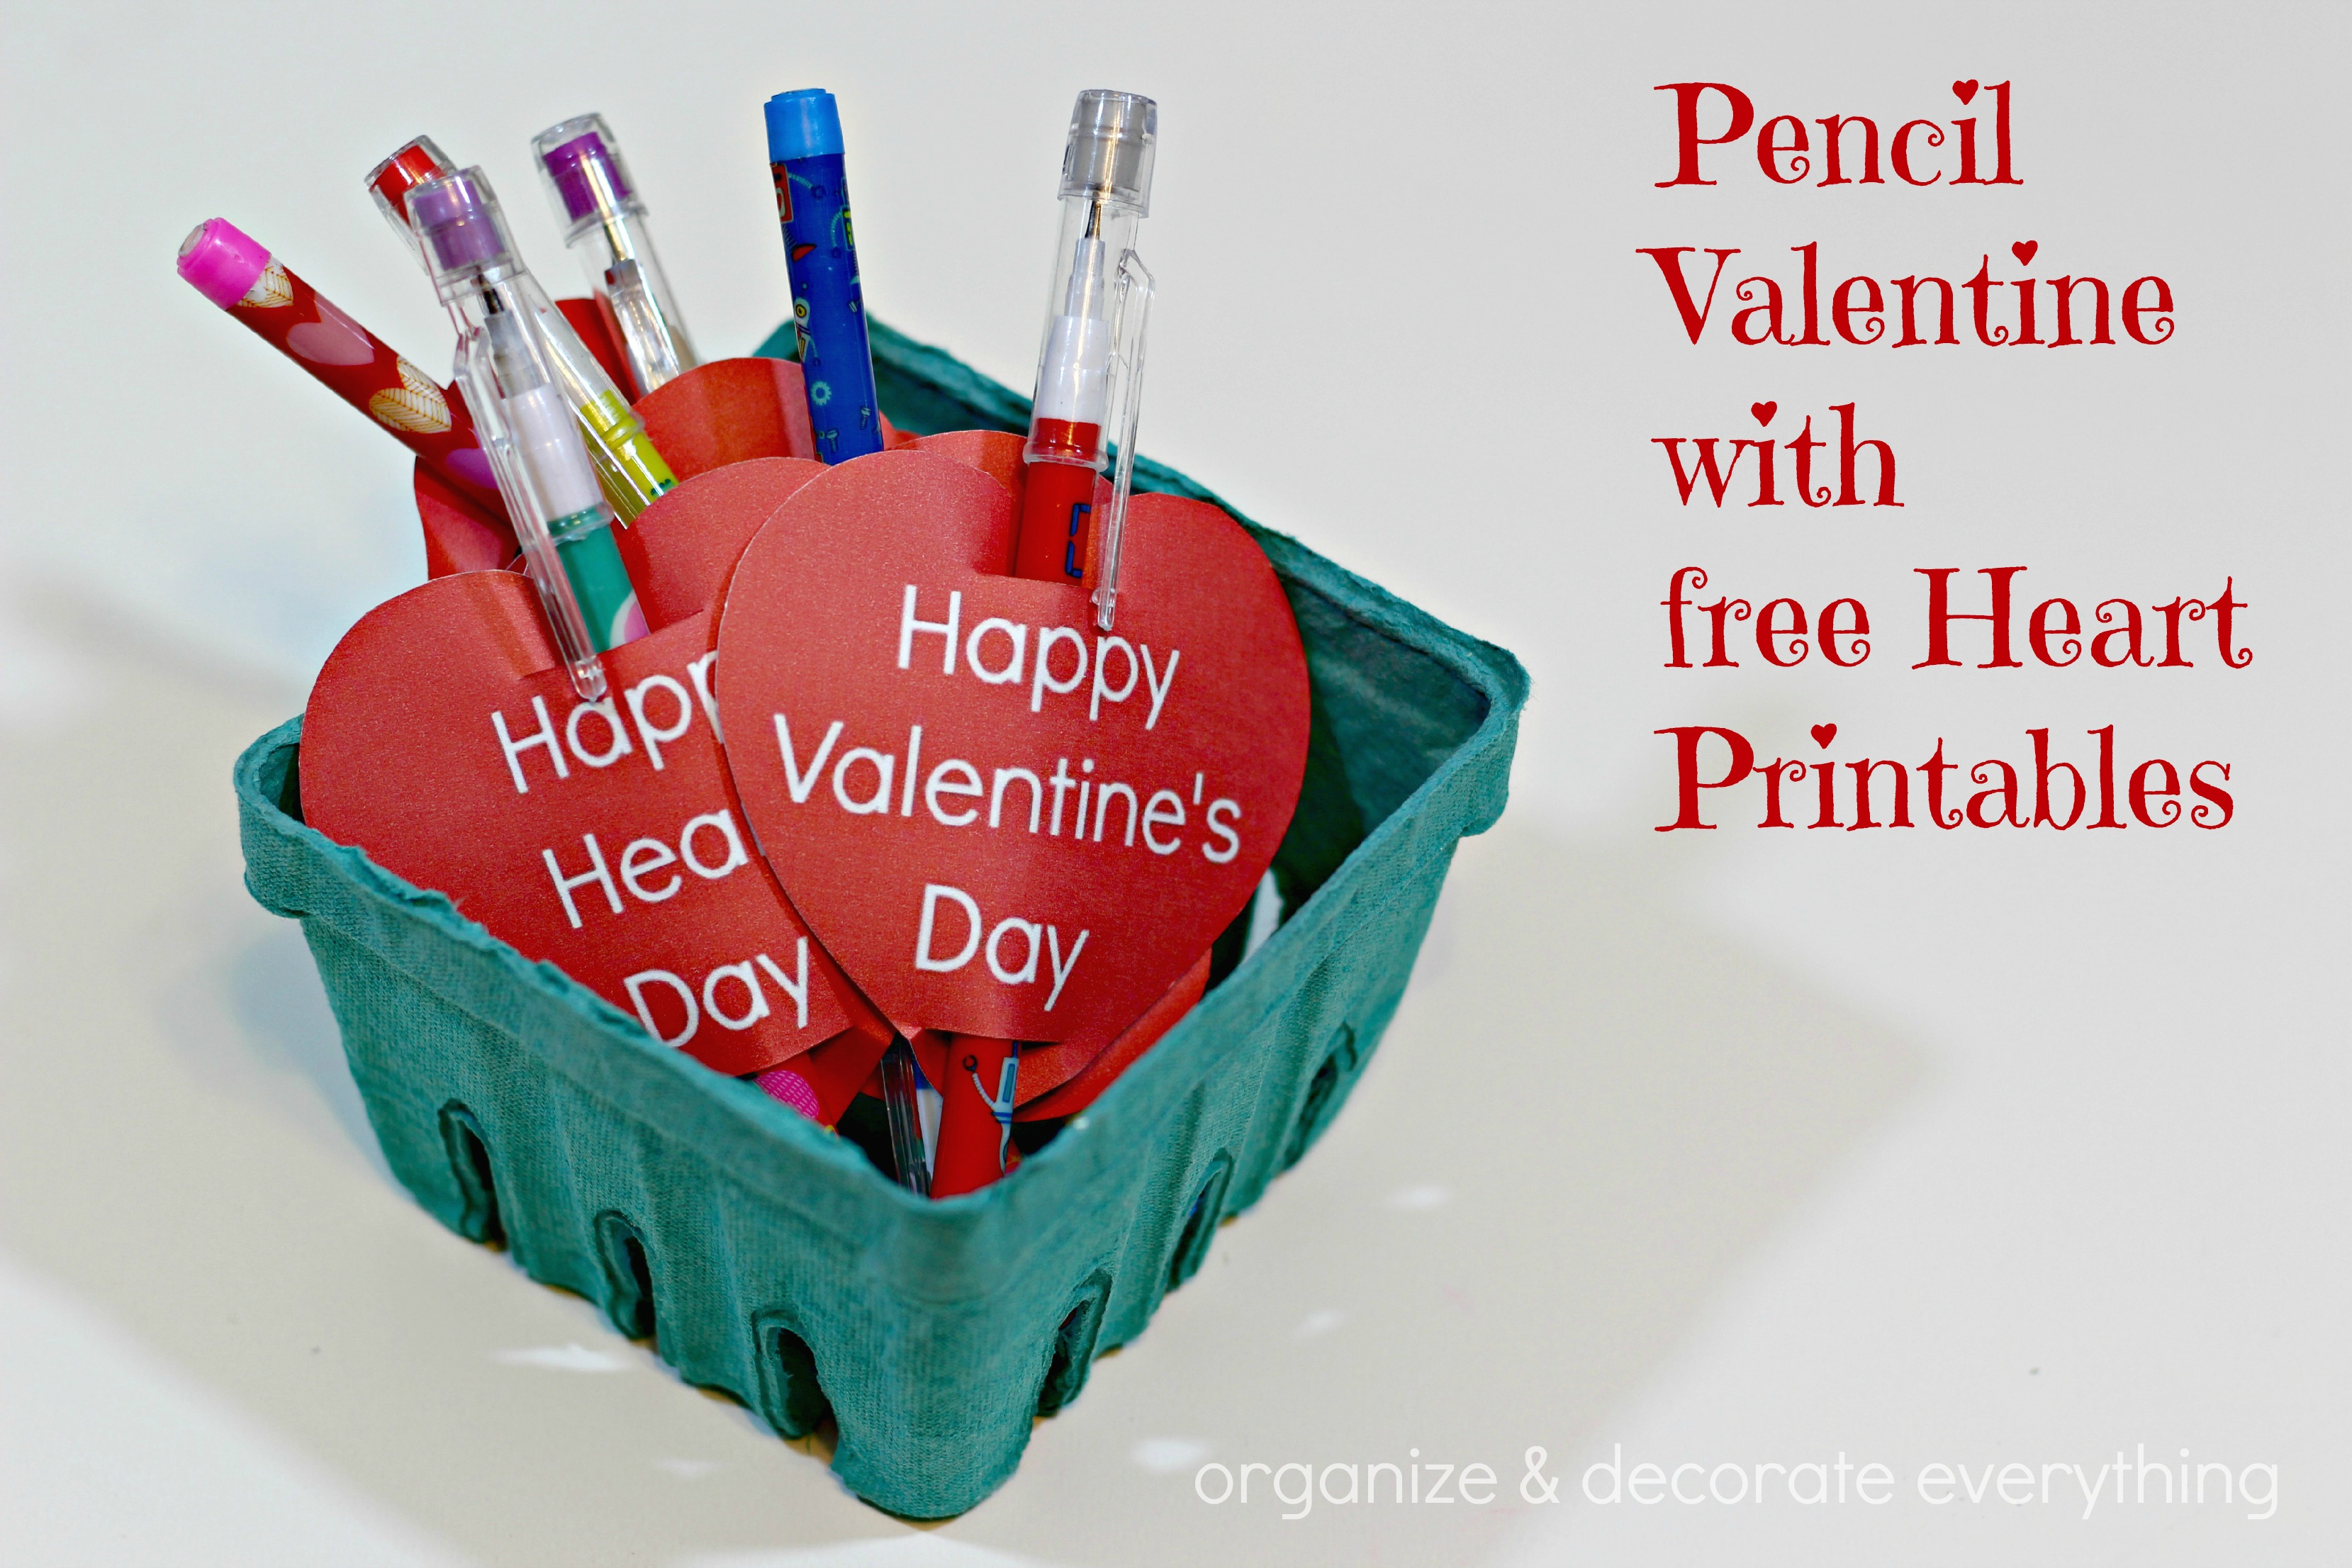 10 Images of Sharp Pencil Valentine Printable